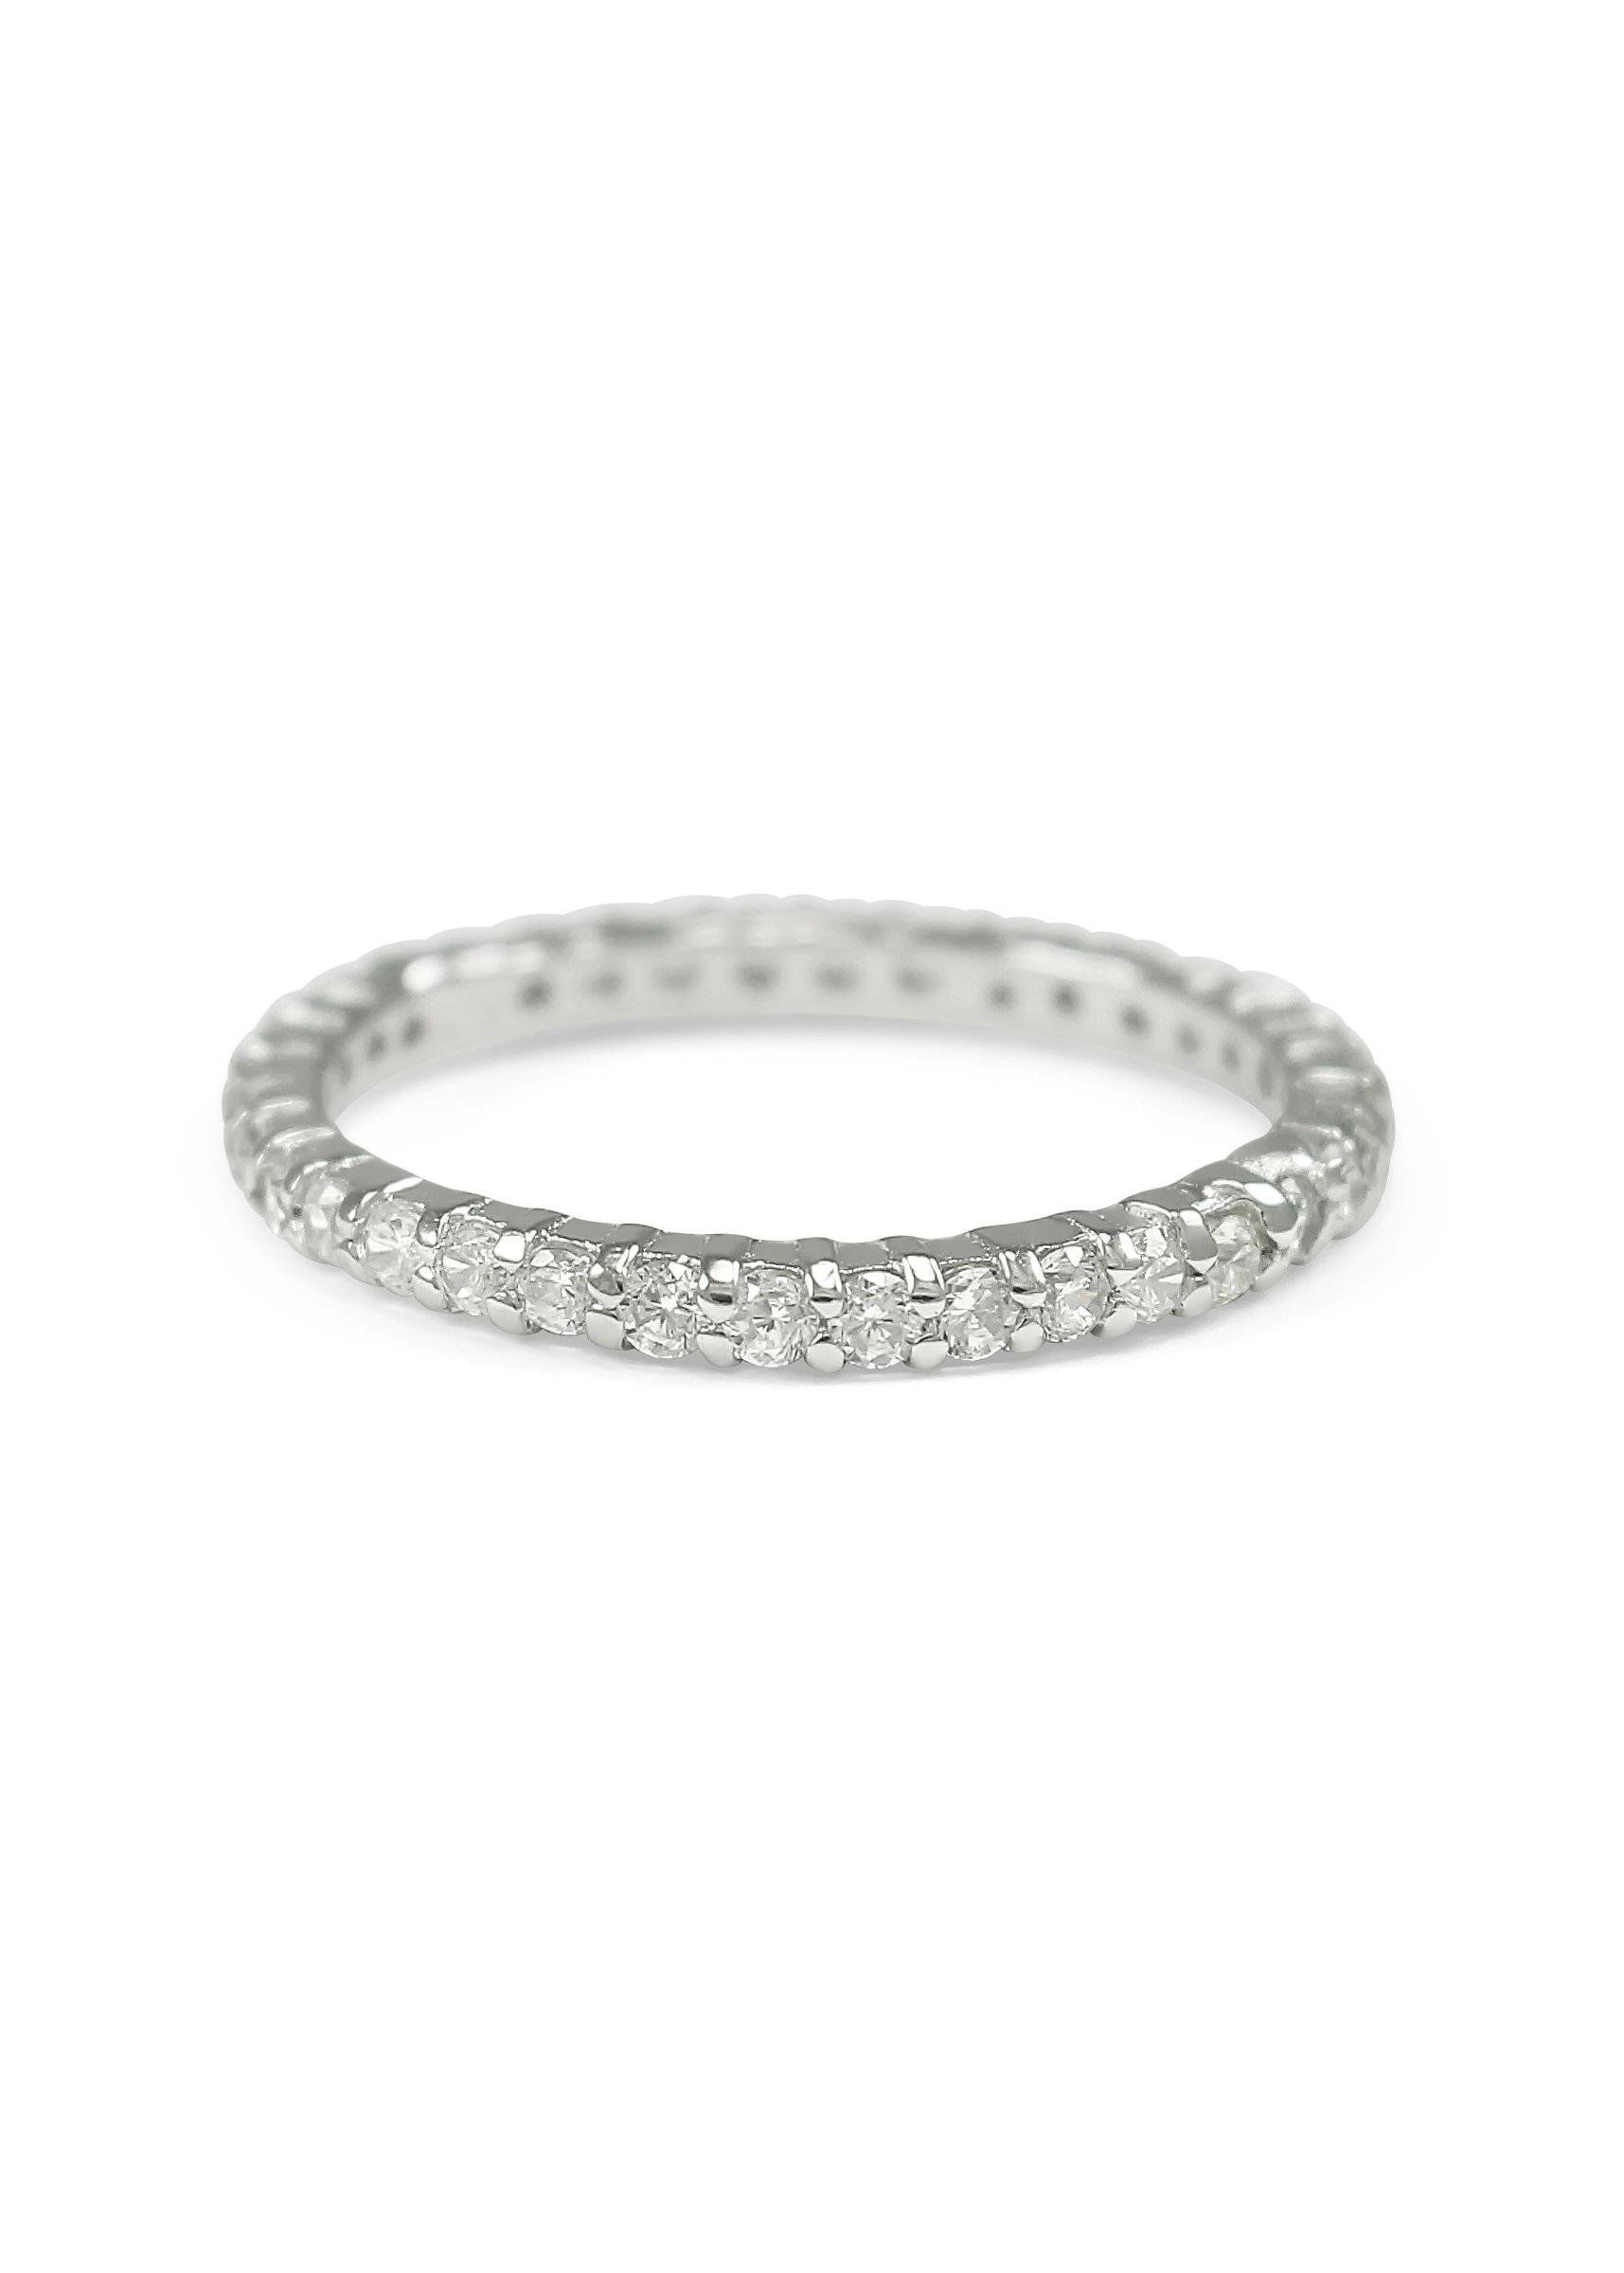 925 Sterling Silver Eternity Band Ring with Simulated Diamonds / Wedding Bands / Promise Rings